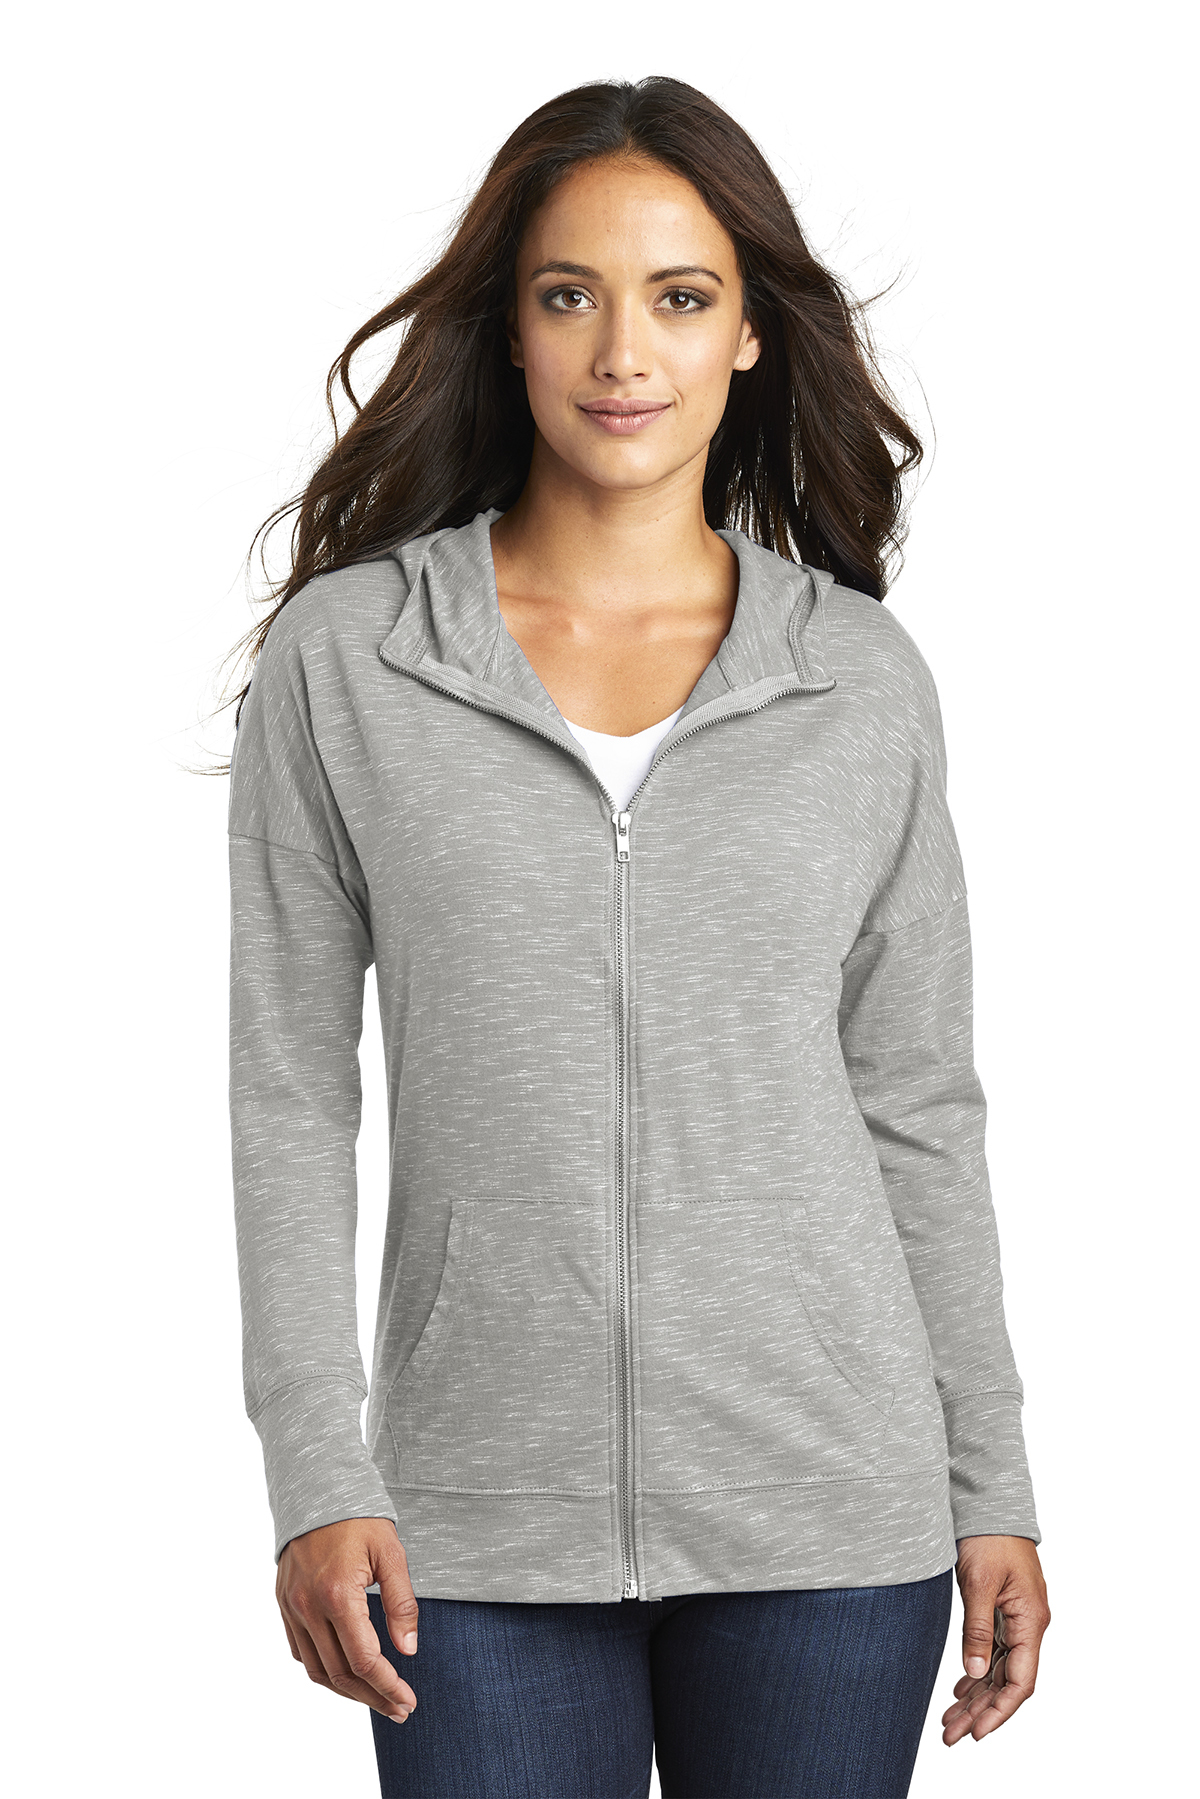 District DT665 - Women's Medal Full-Zip Hoodie